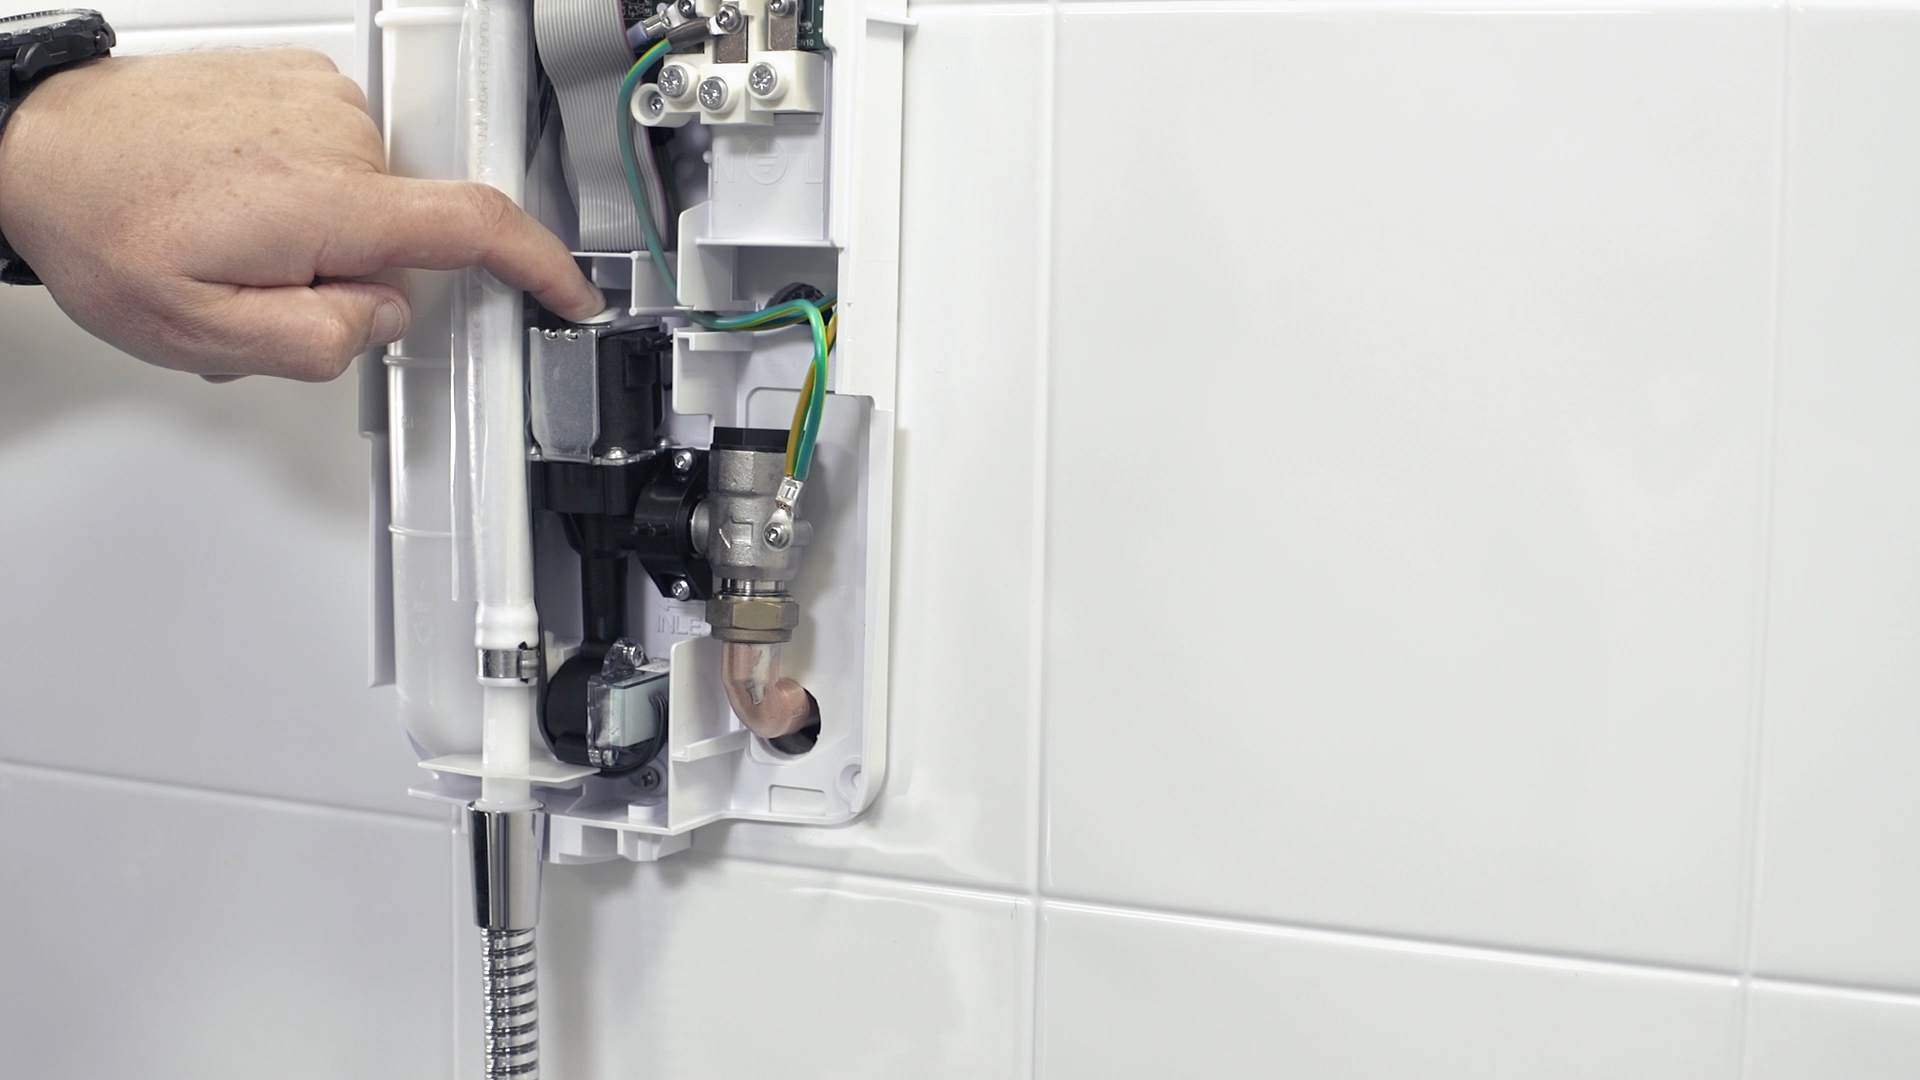 Mira Advance shower outlet tube and hose fitting